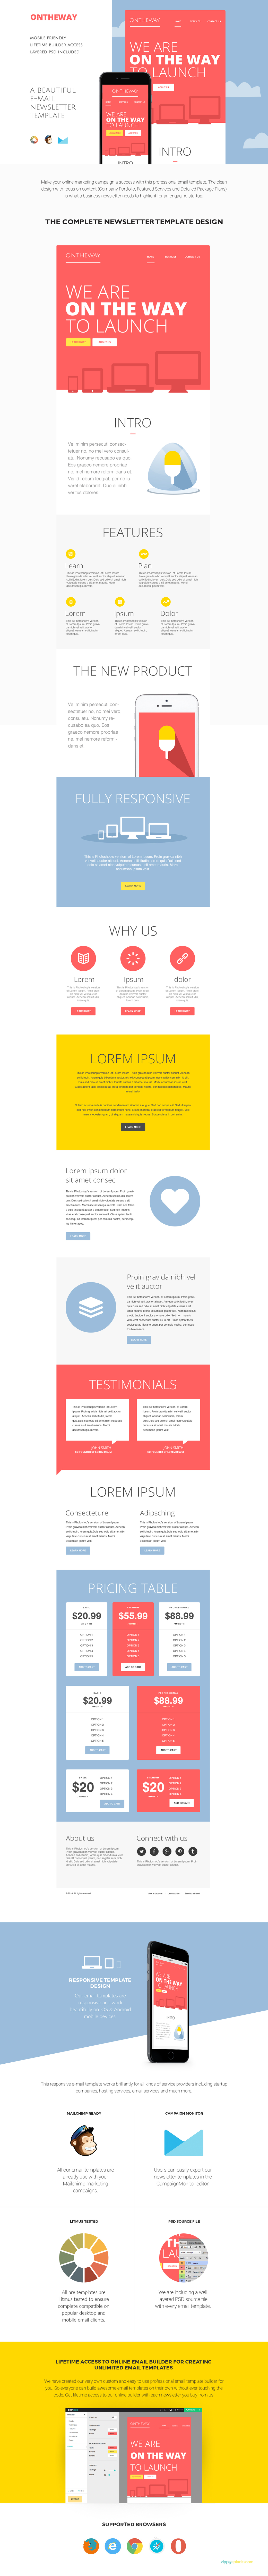 Free Email Templates by ActiveCampaign | Email Template | Pinterest ...